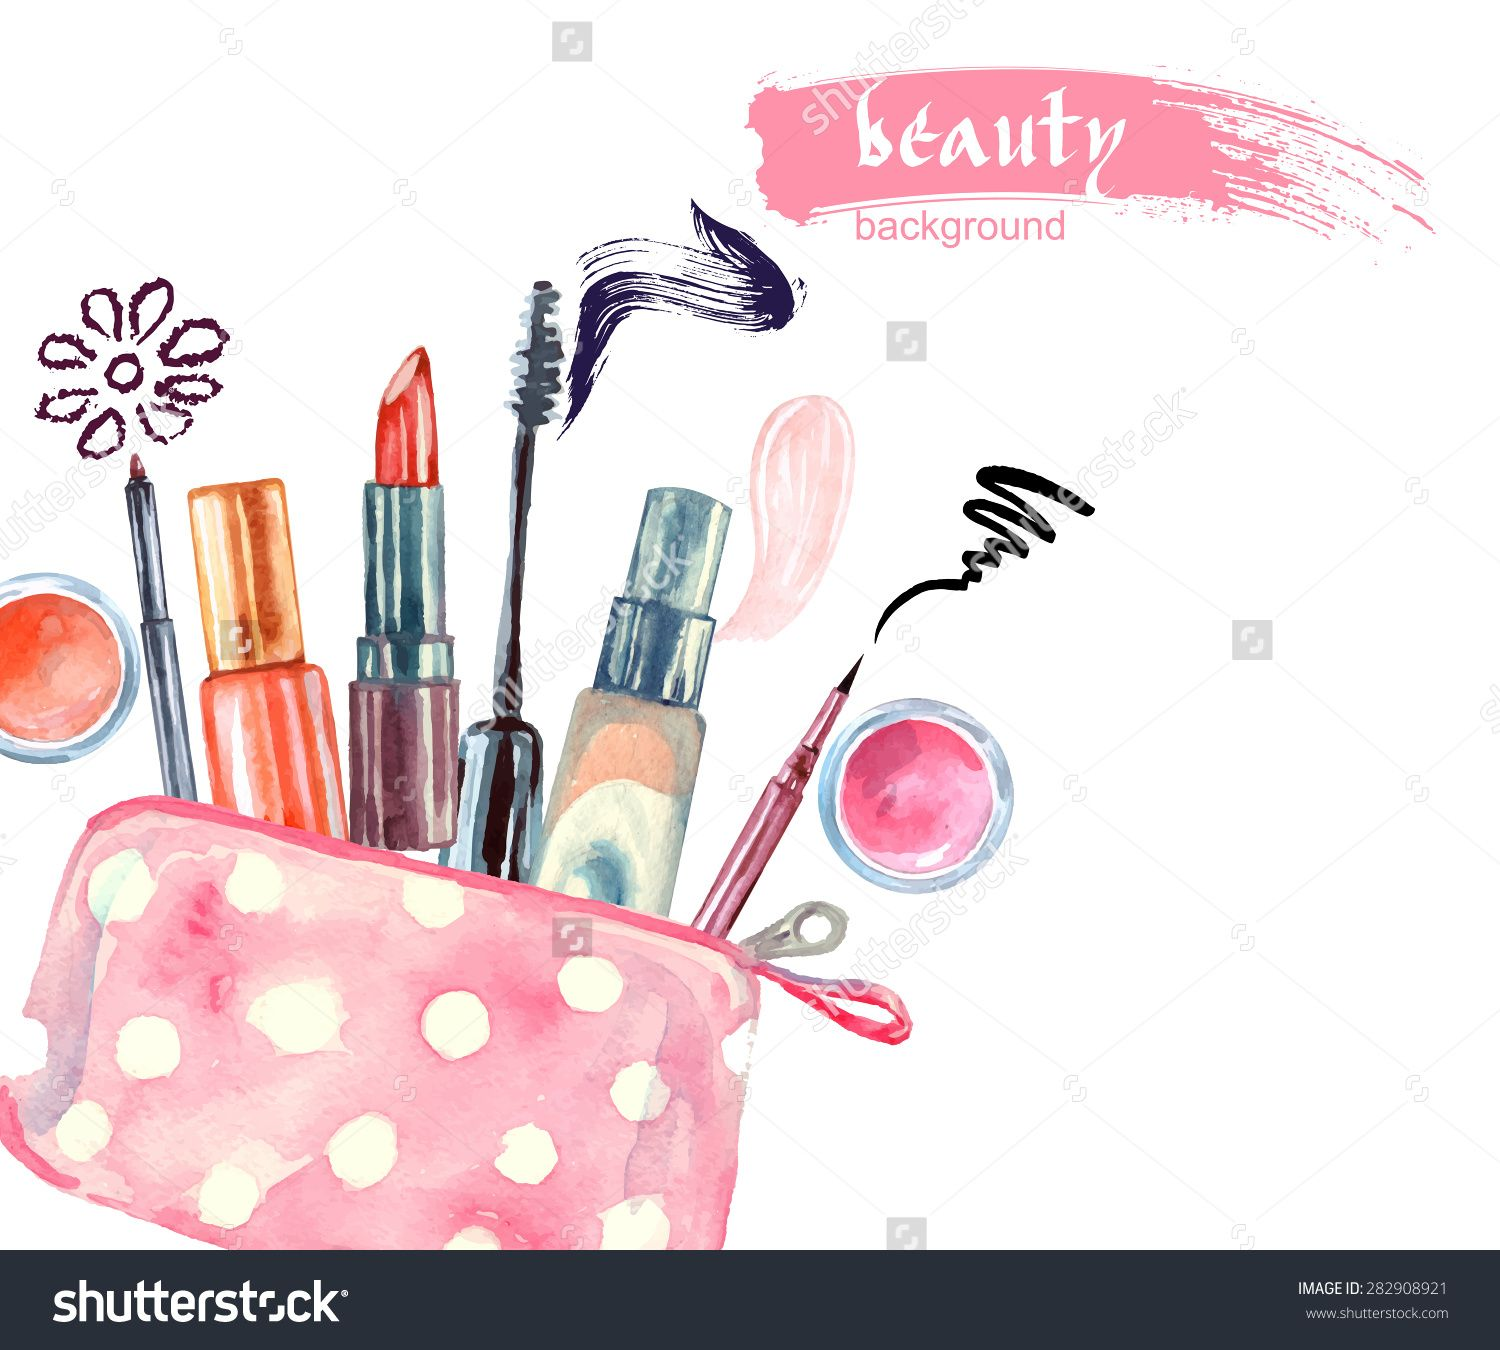 Makeup artist clipart graphic library download colors too busy, but nice art otherwise   Blog Logo ... graphic library download